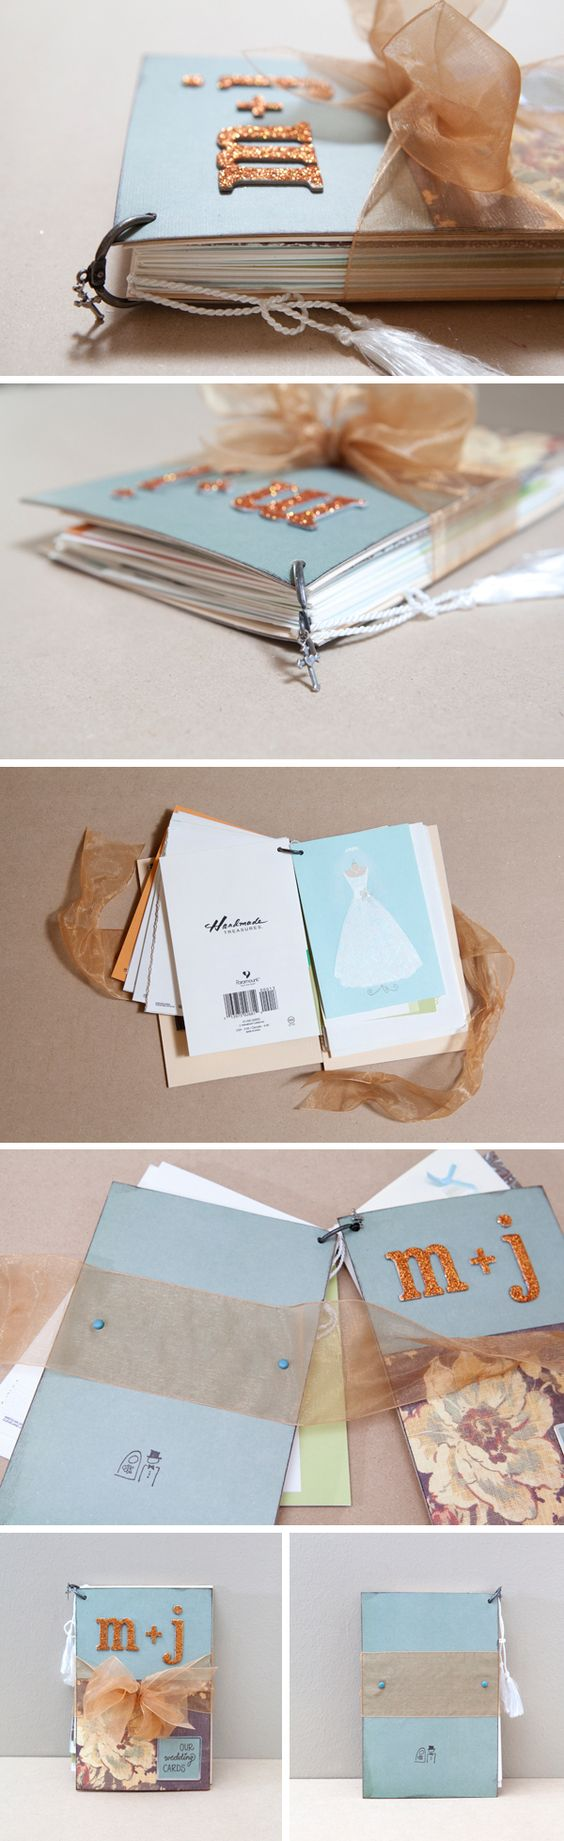 turn cards into book. Cute idea